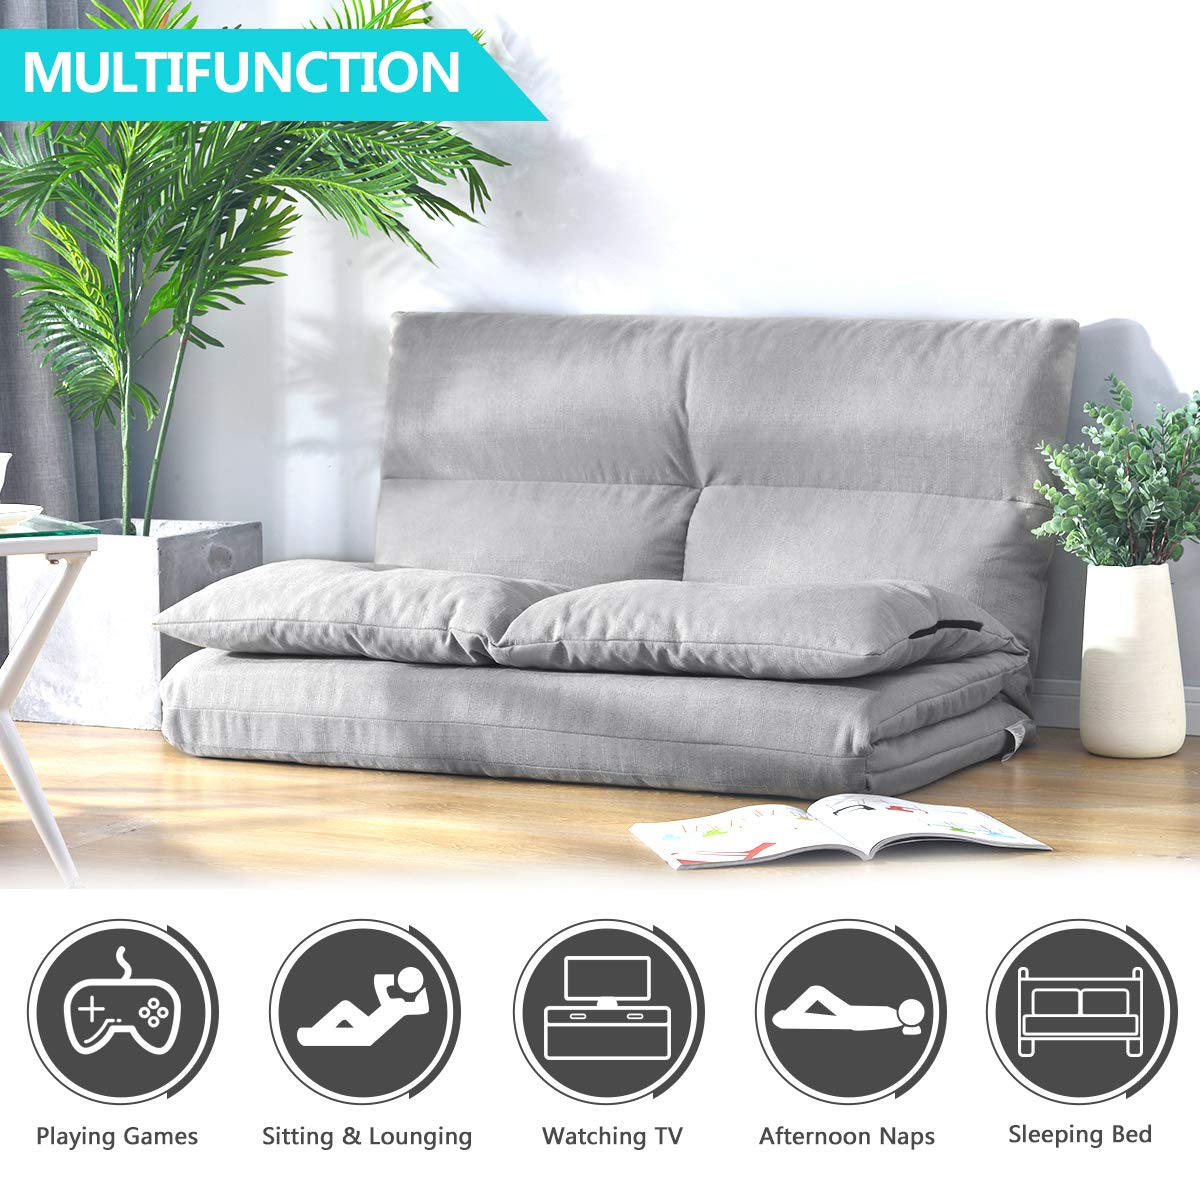 Merax PP036318AAA Foldable Floor Couch and Sofa for Living Room and Bedroom, Gray